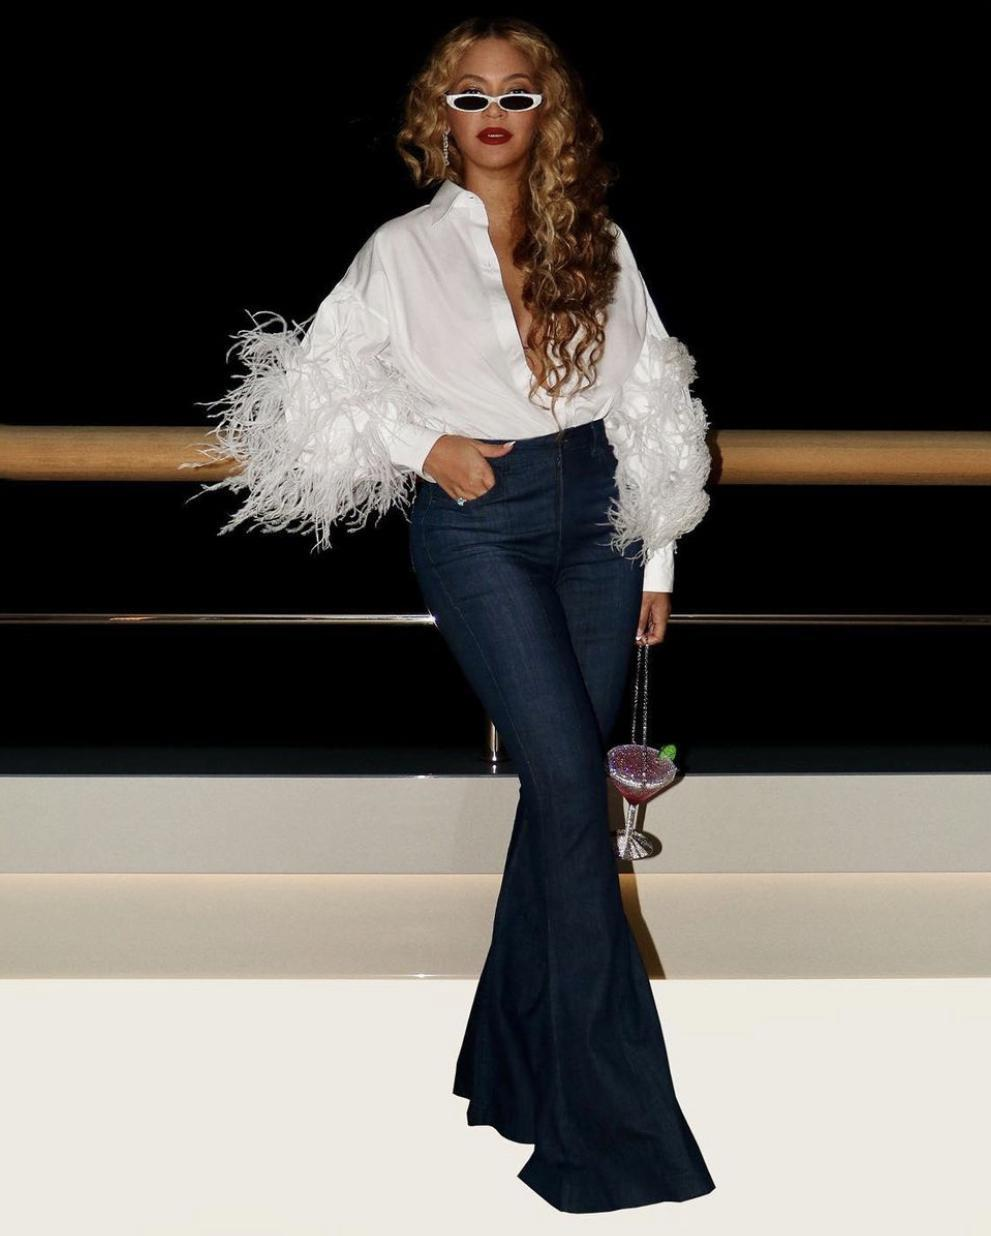 Beyoncé Spotted Yachting in Capri With Jay-Z Wearing Valentino White Feather Shirt, Flare Leg Jeans, PHILÓ White Sunglasses, and Judith Leiber Martini Clutch